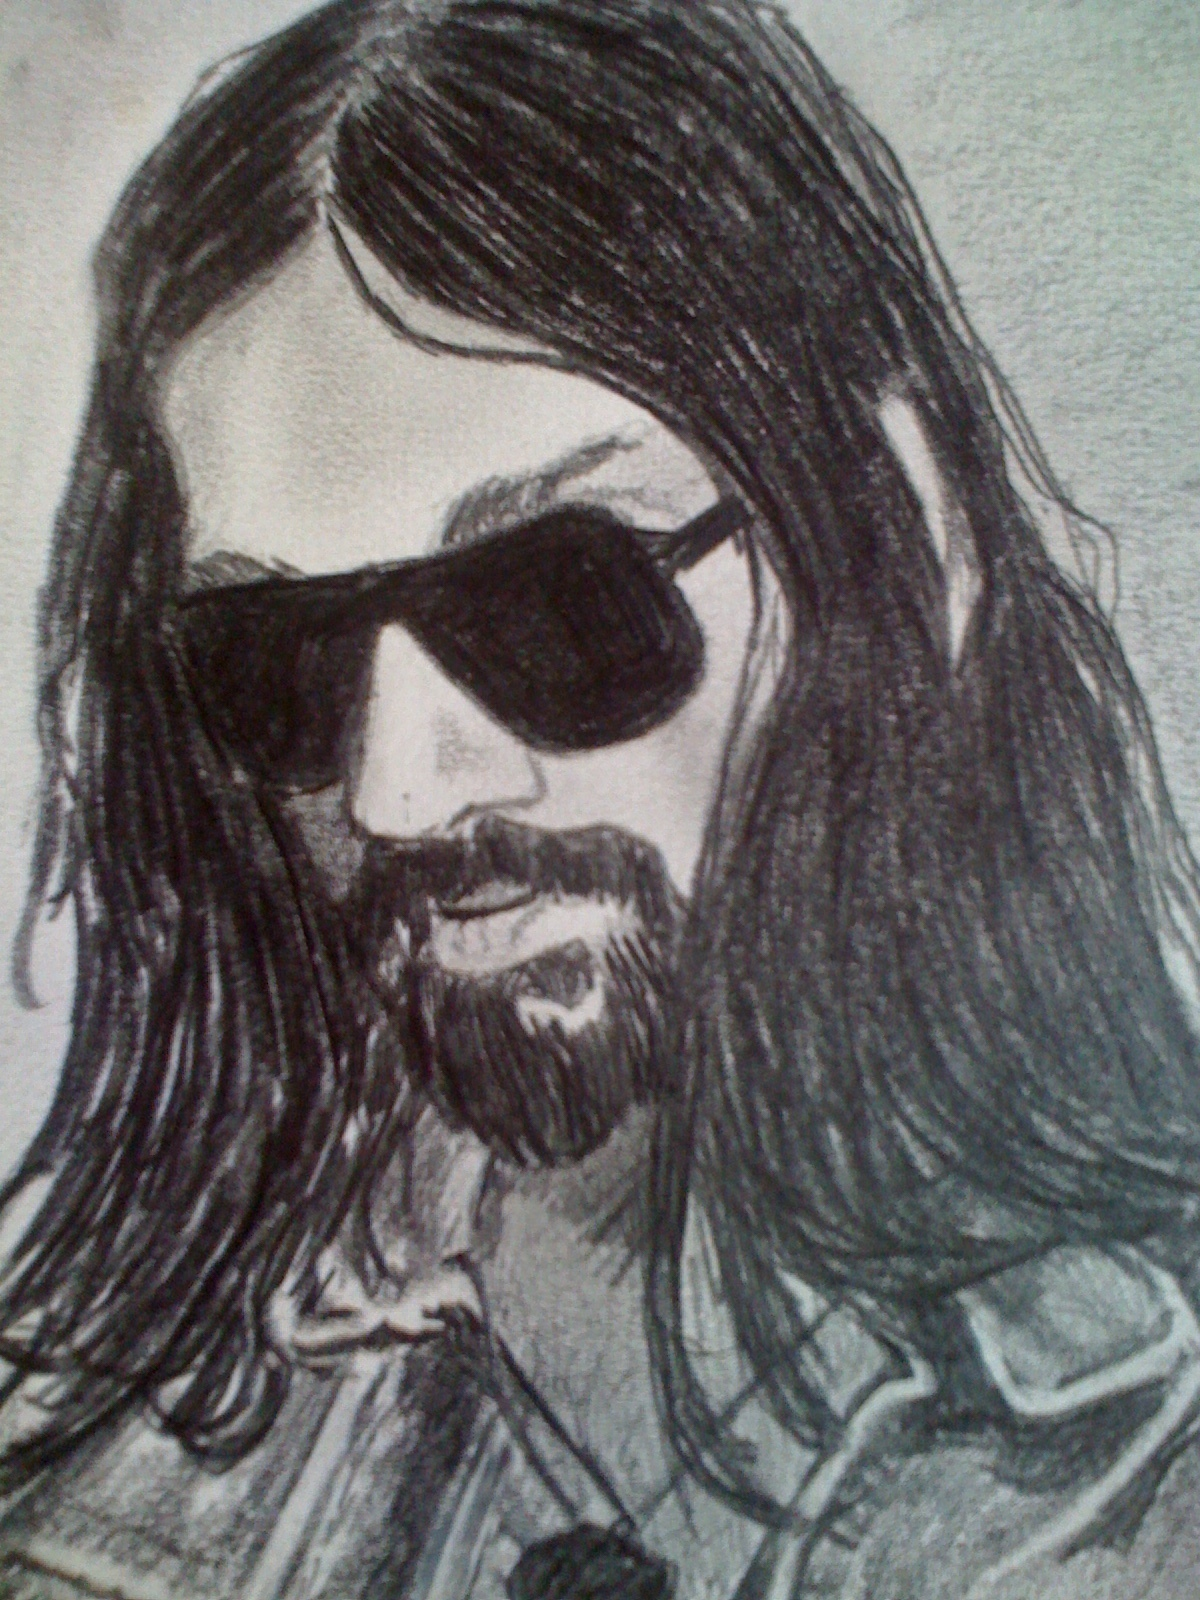 30 Seconds to Mars Drawings